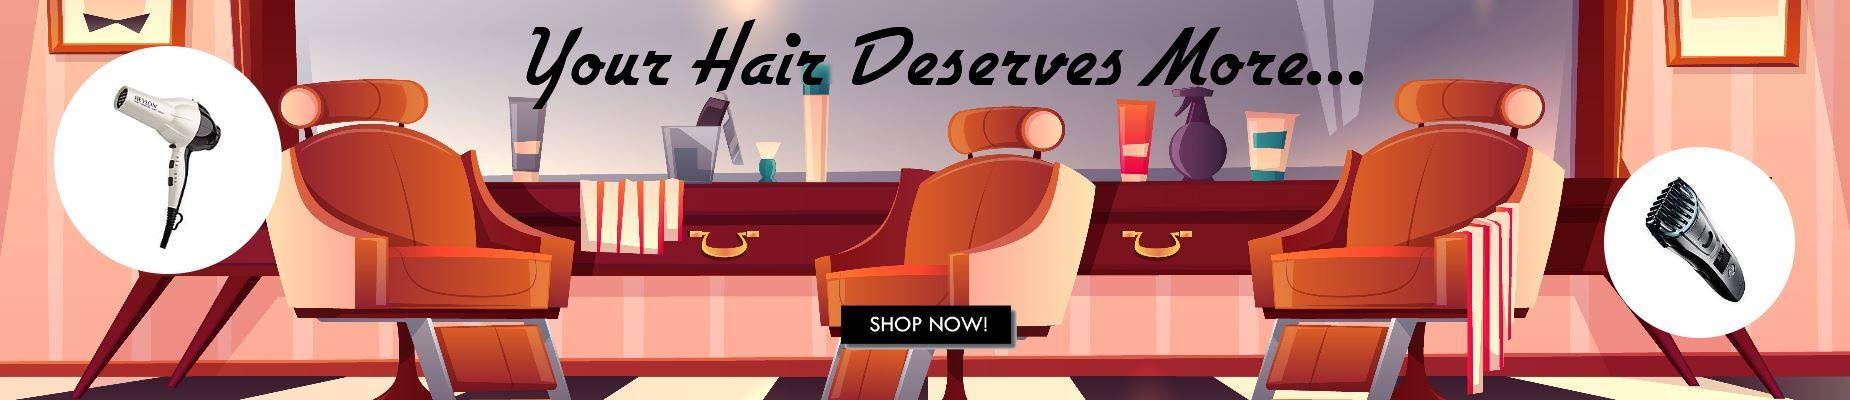 hair care at dbhouse with big deals and sales